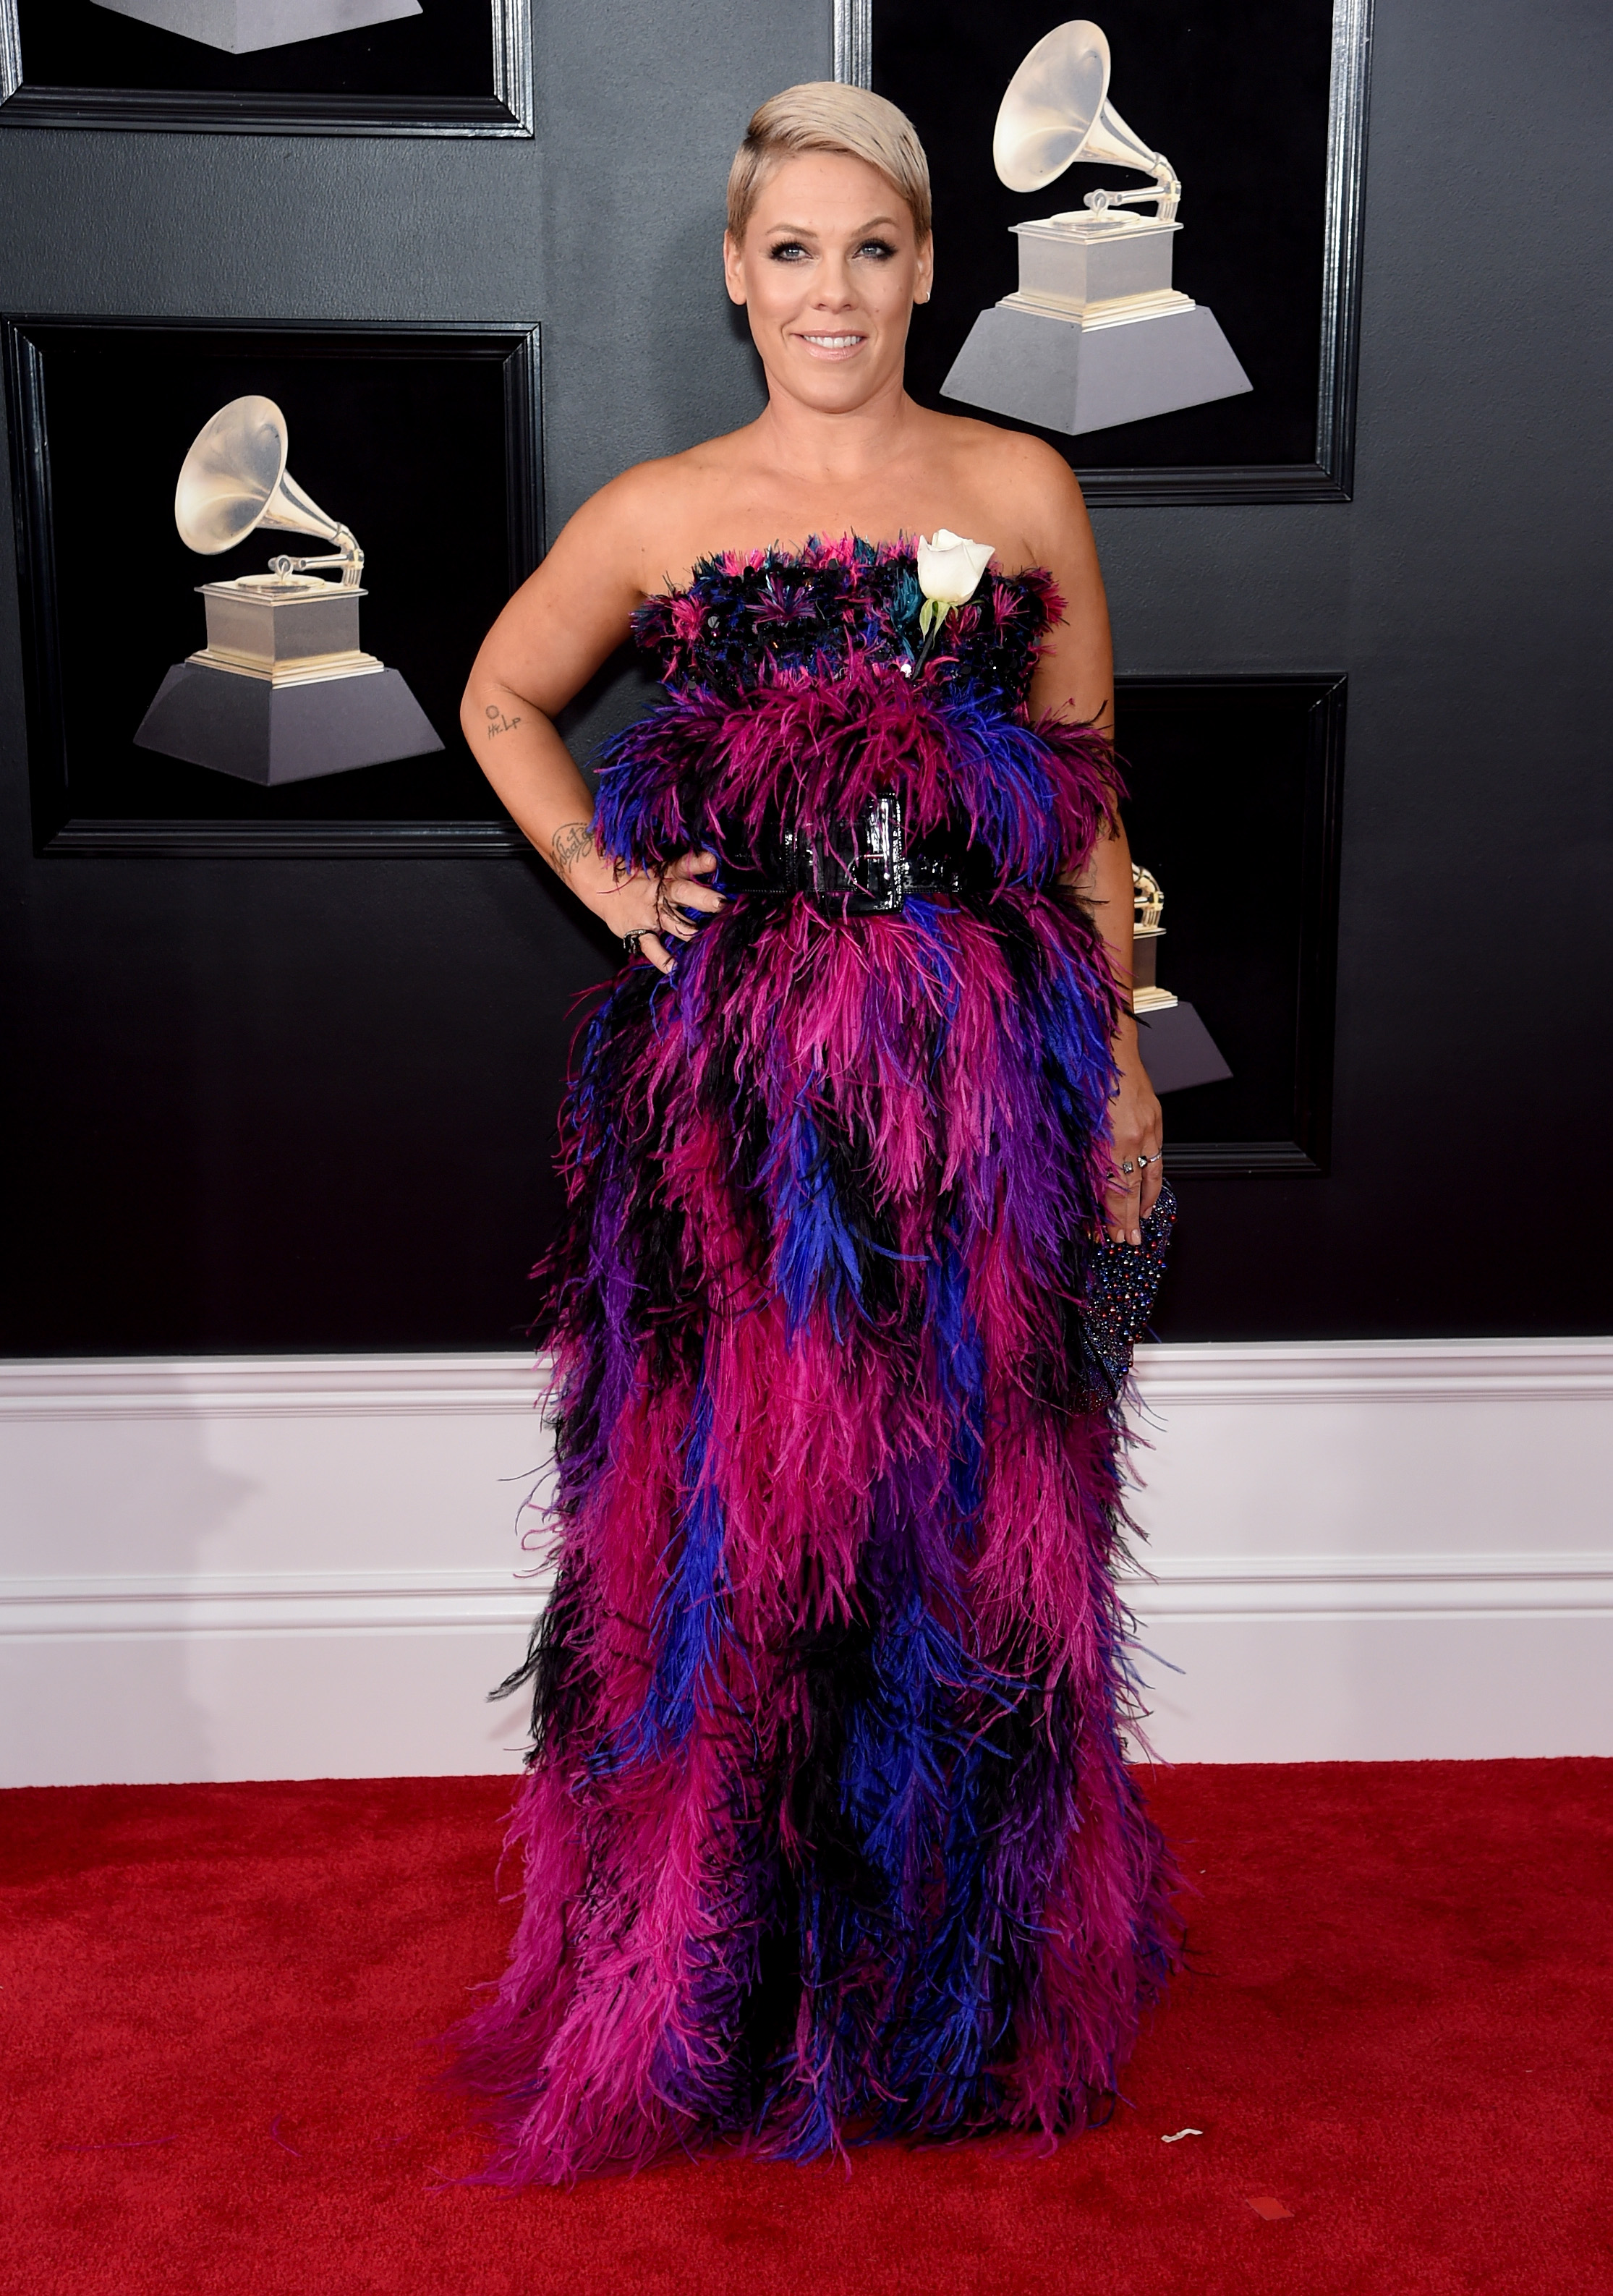 NEW YORK, NY - JANUARY 28:  Recording artist Pink attends the 60th Annual GRAMMY Awards at Madison Square Garden on January 28, 2018 in New York City.  (Photo by Jamie McCarthy/Getty Images)